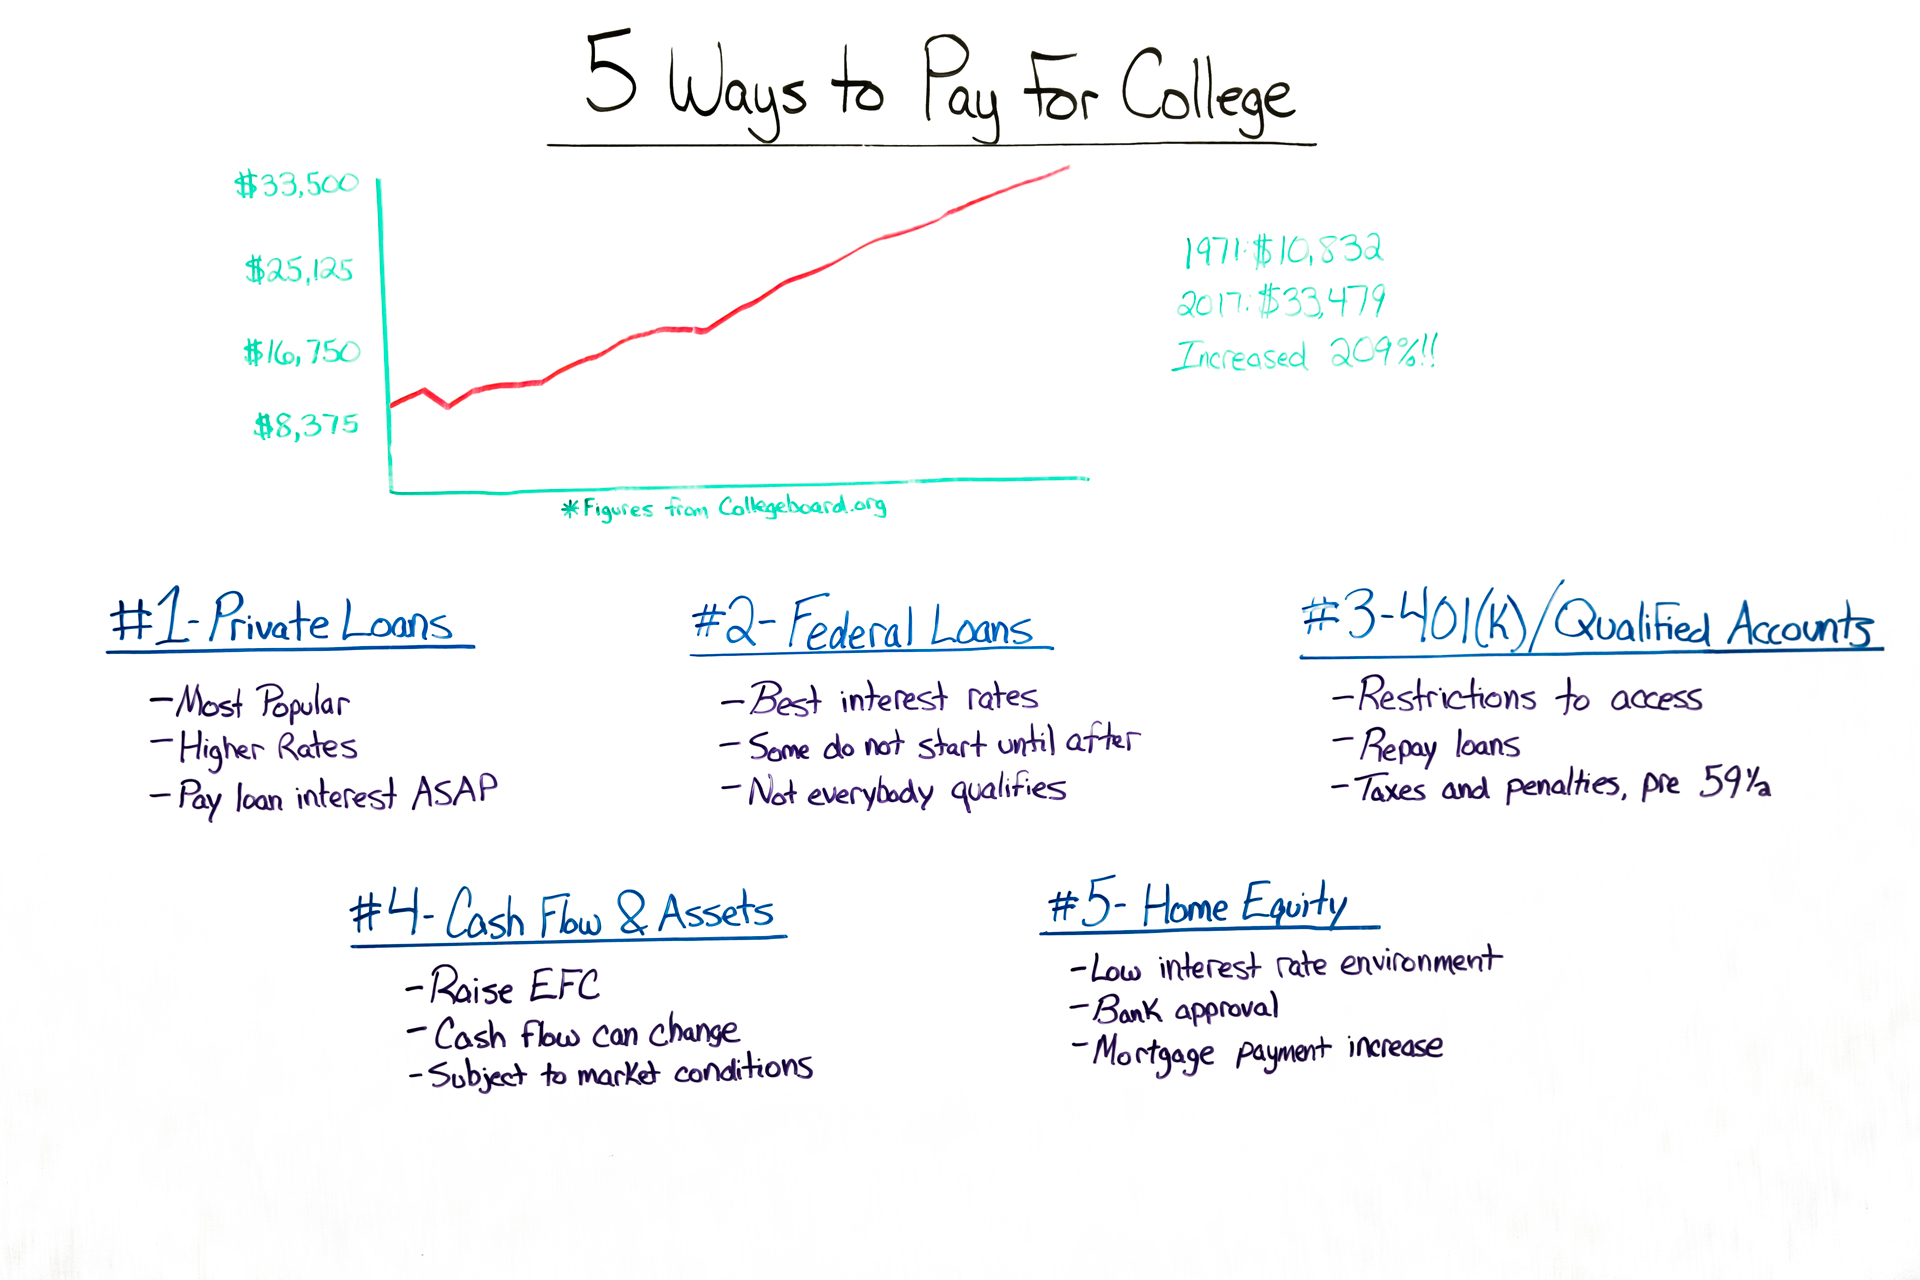 5 Ways to Pay For College